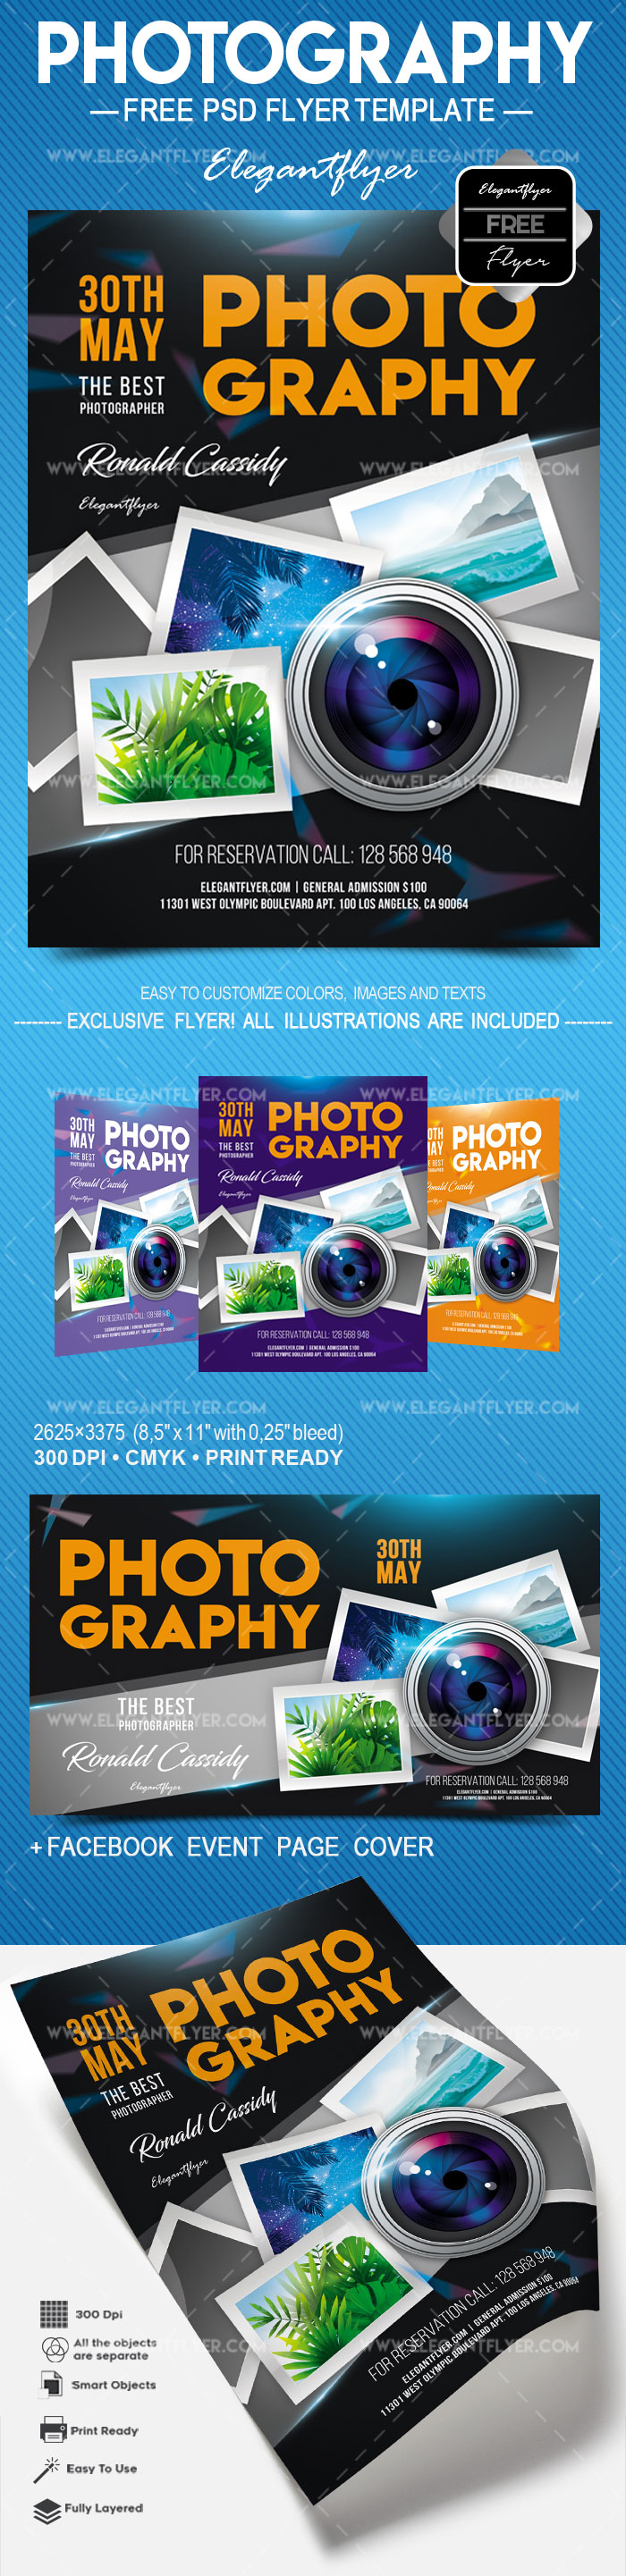 Photography – Free Flyer PSD Template